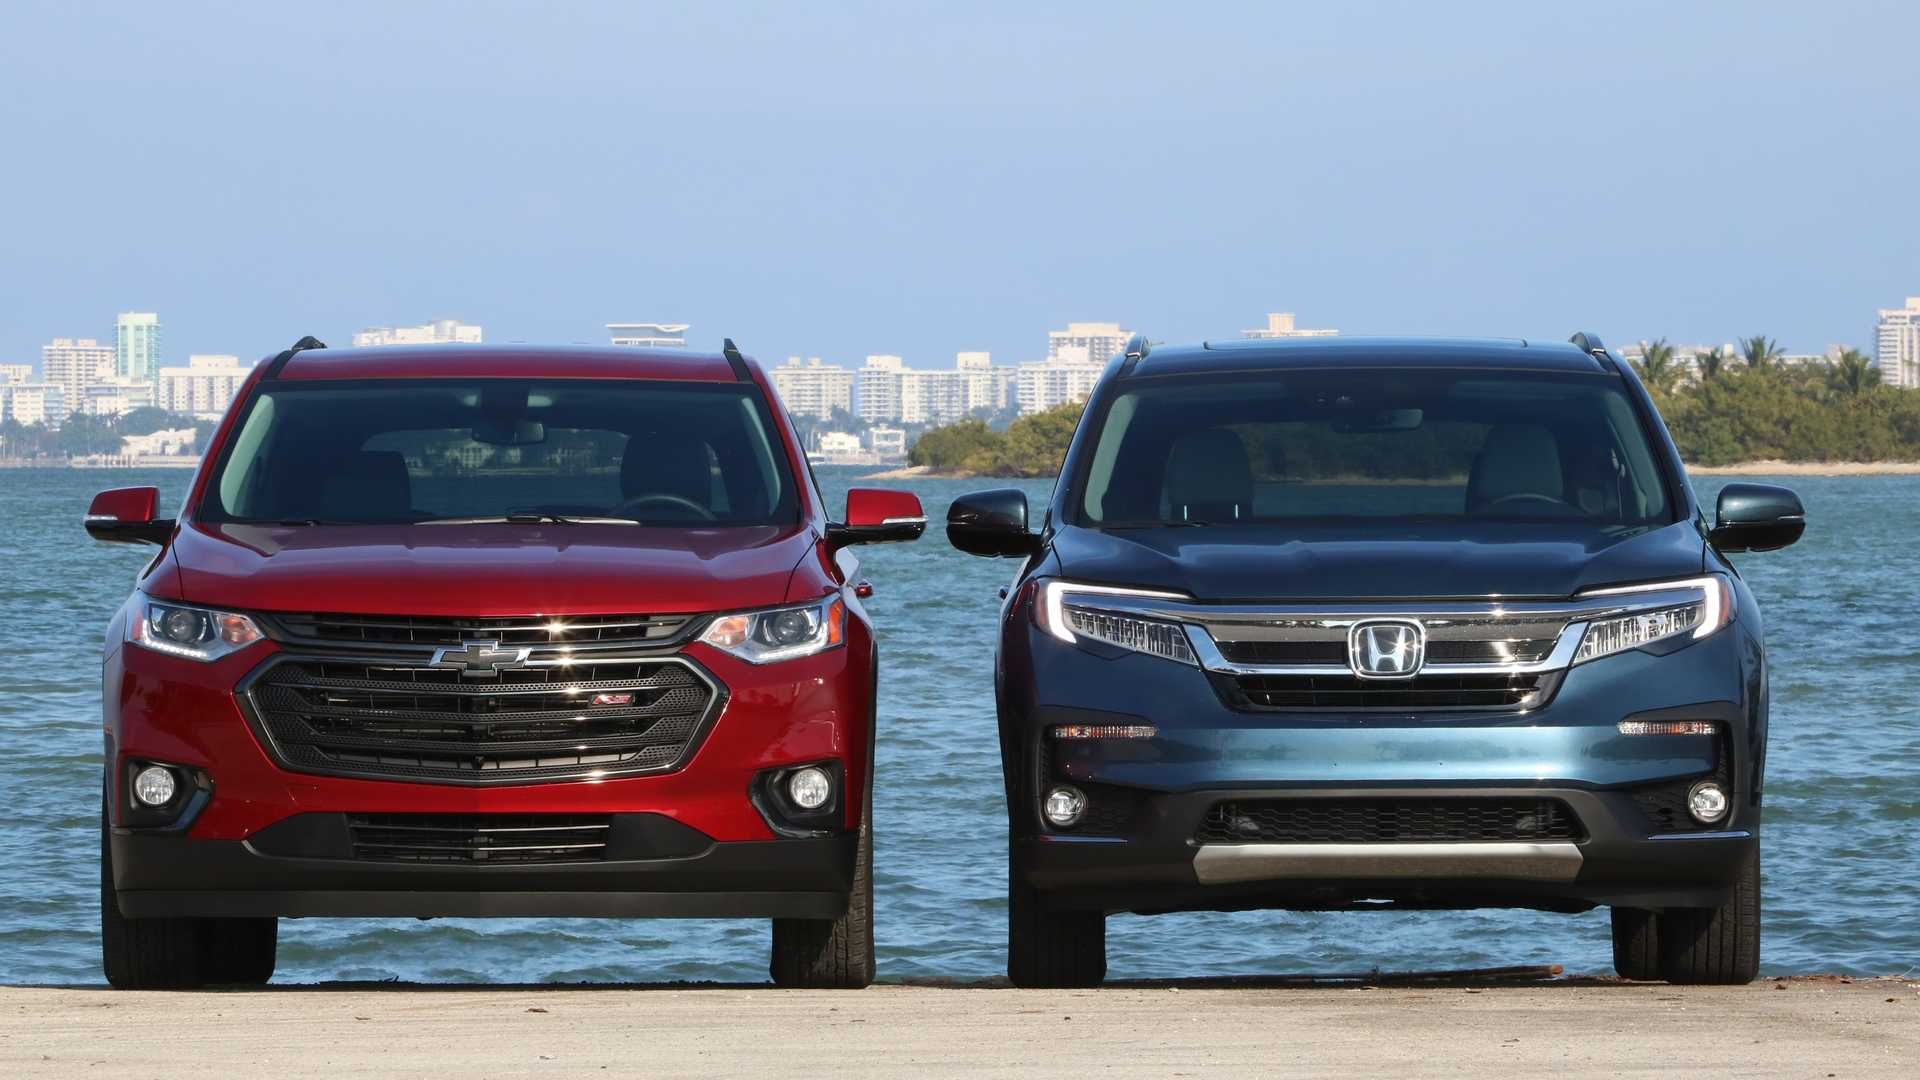 66 The Best 2019 Chevy Traverse Model